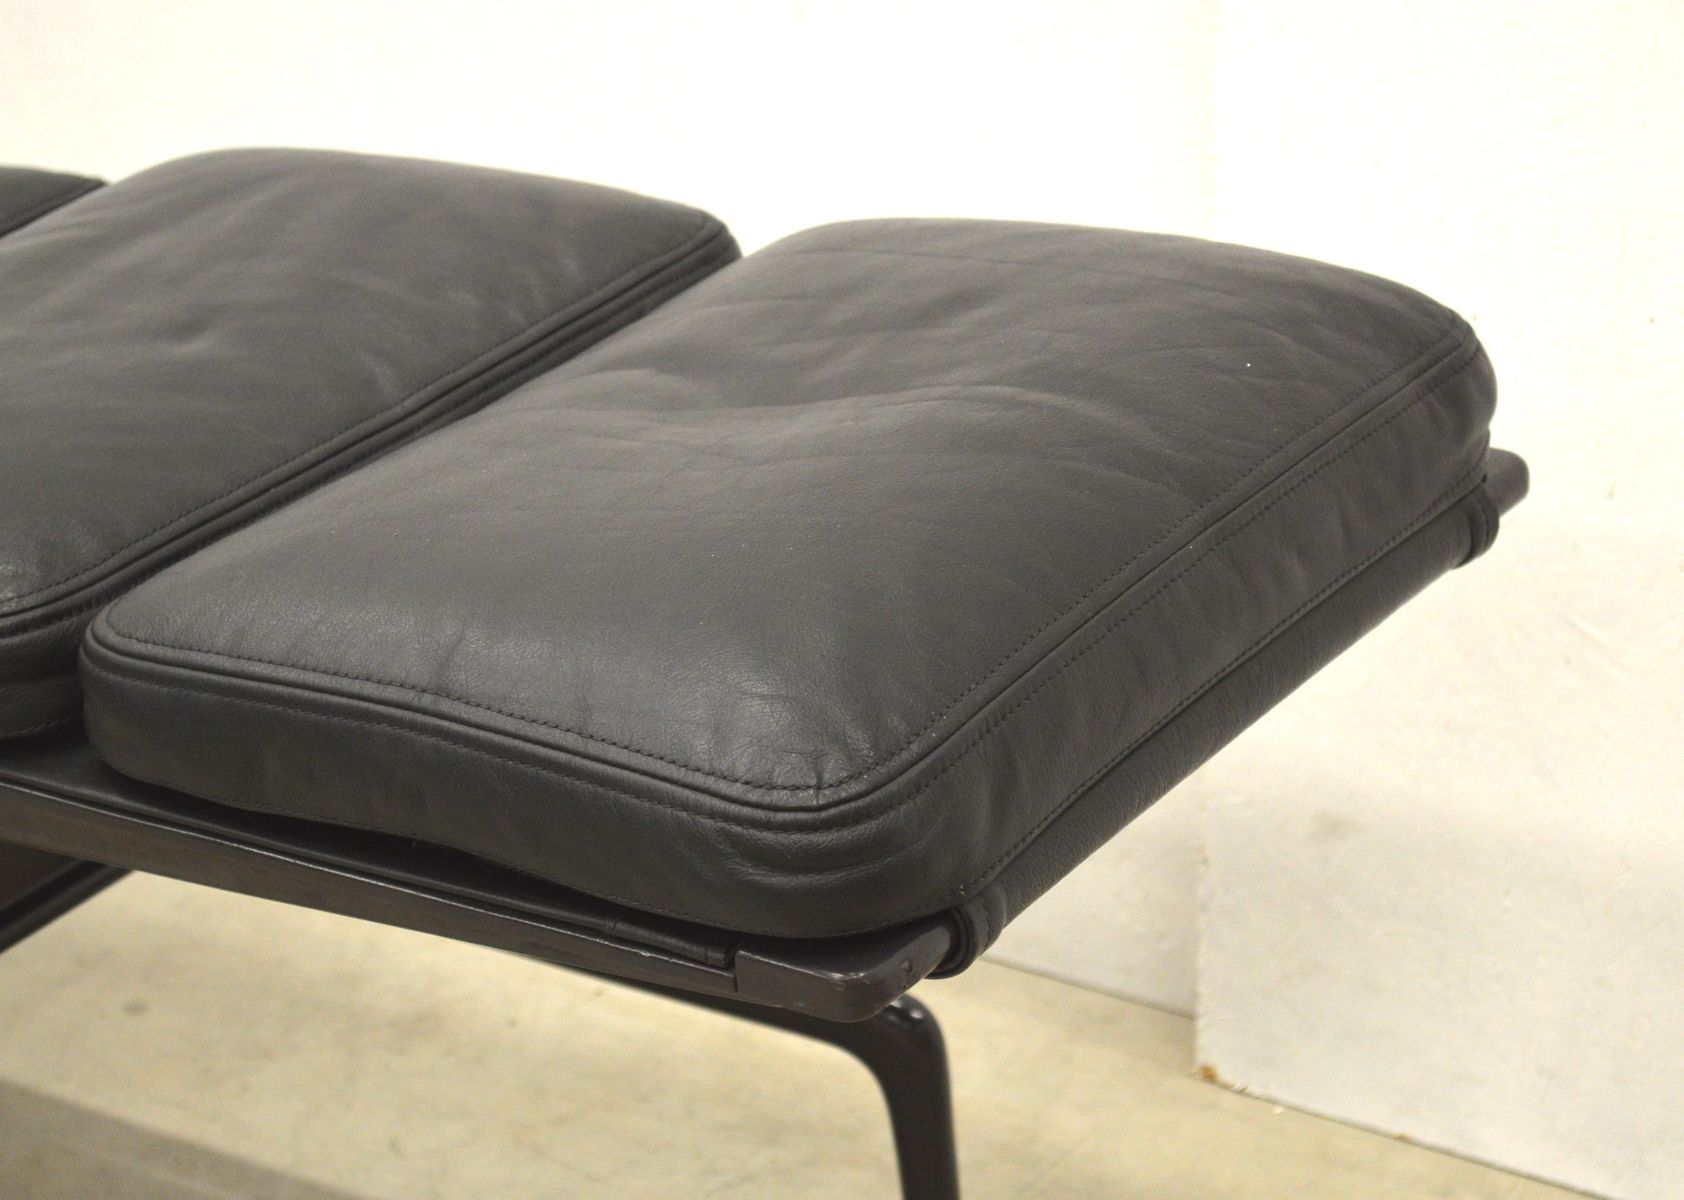 Es106 soft pad la chaise by charles ray eames for vitra for Chaise charles eames